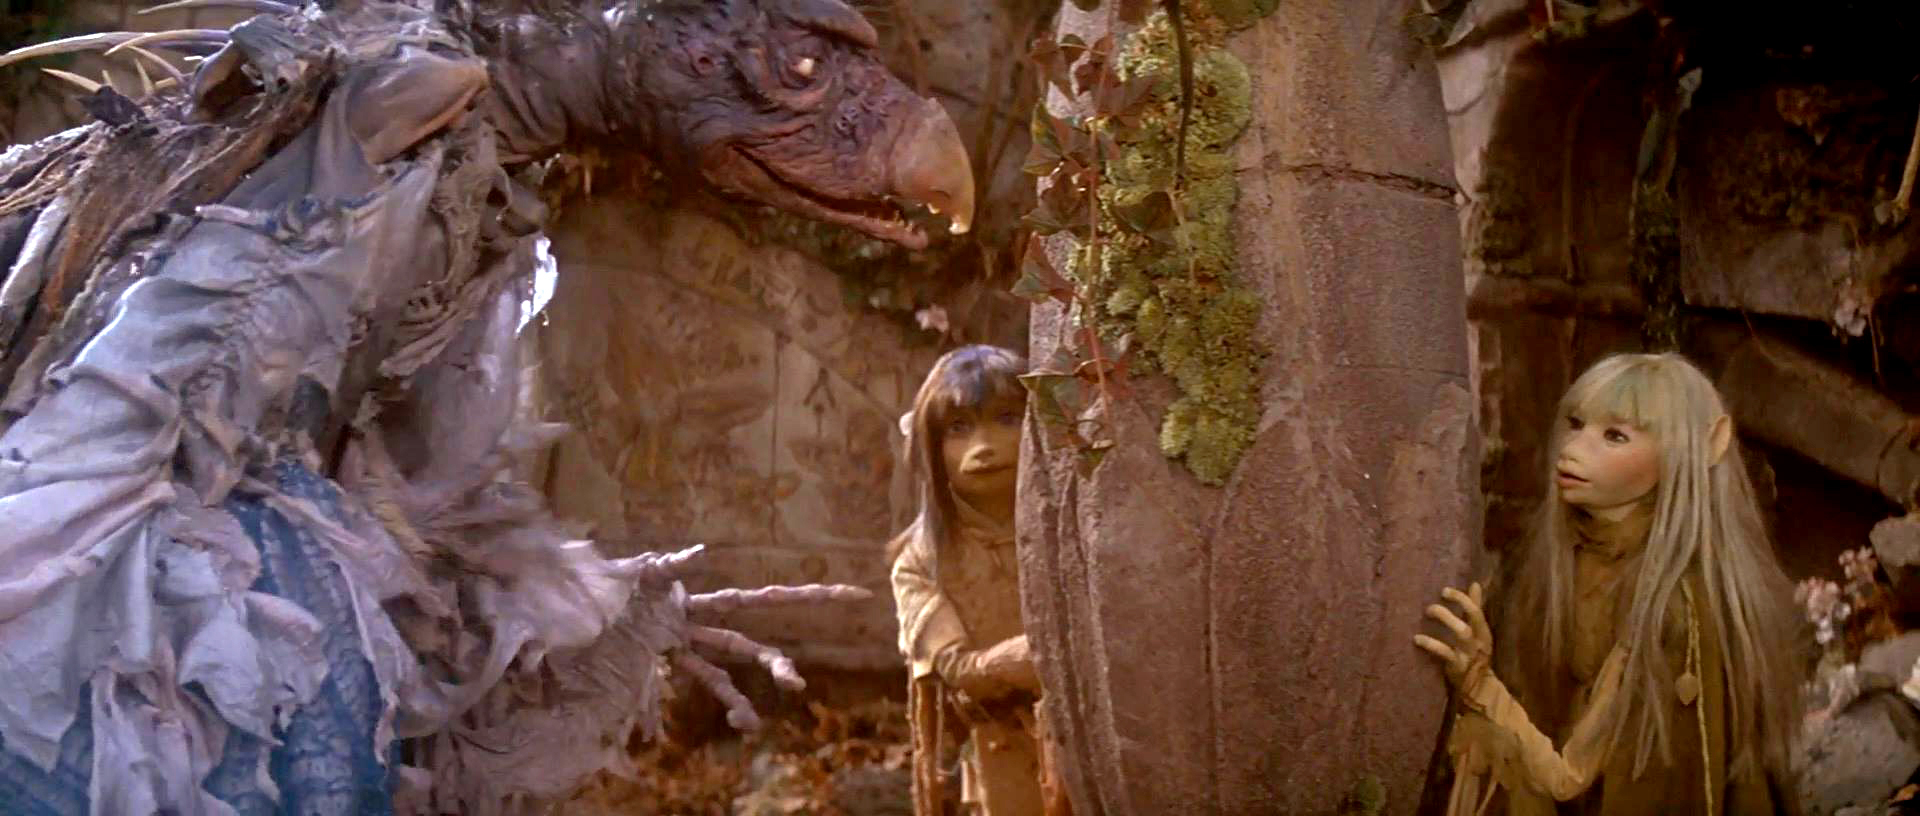 The Dark Crystal has been fully restored in 4K